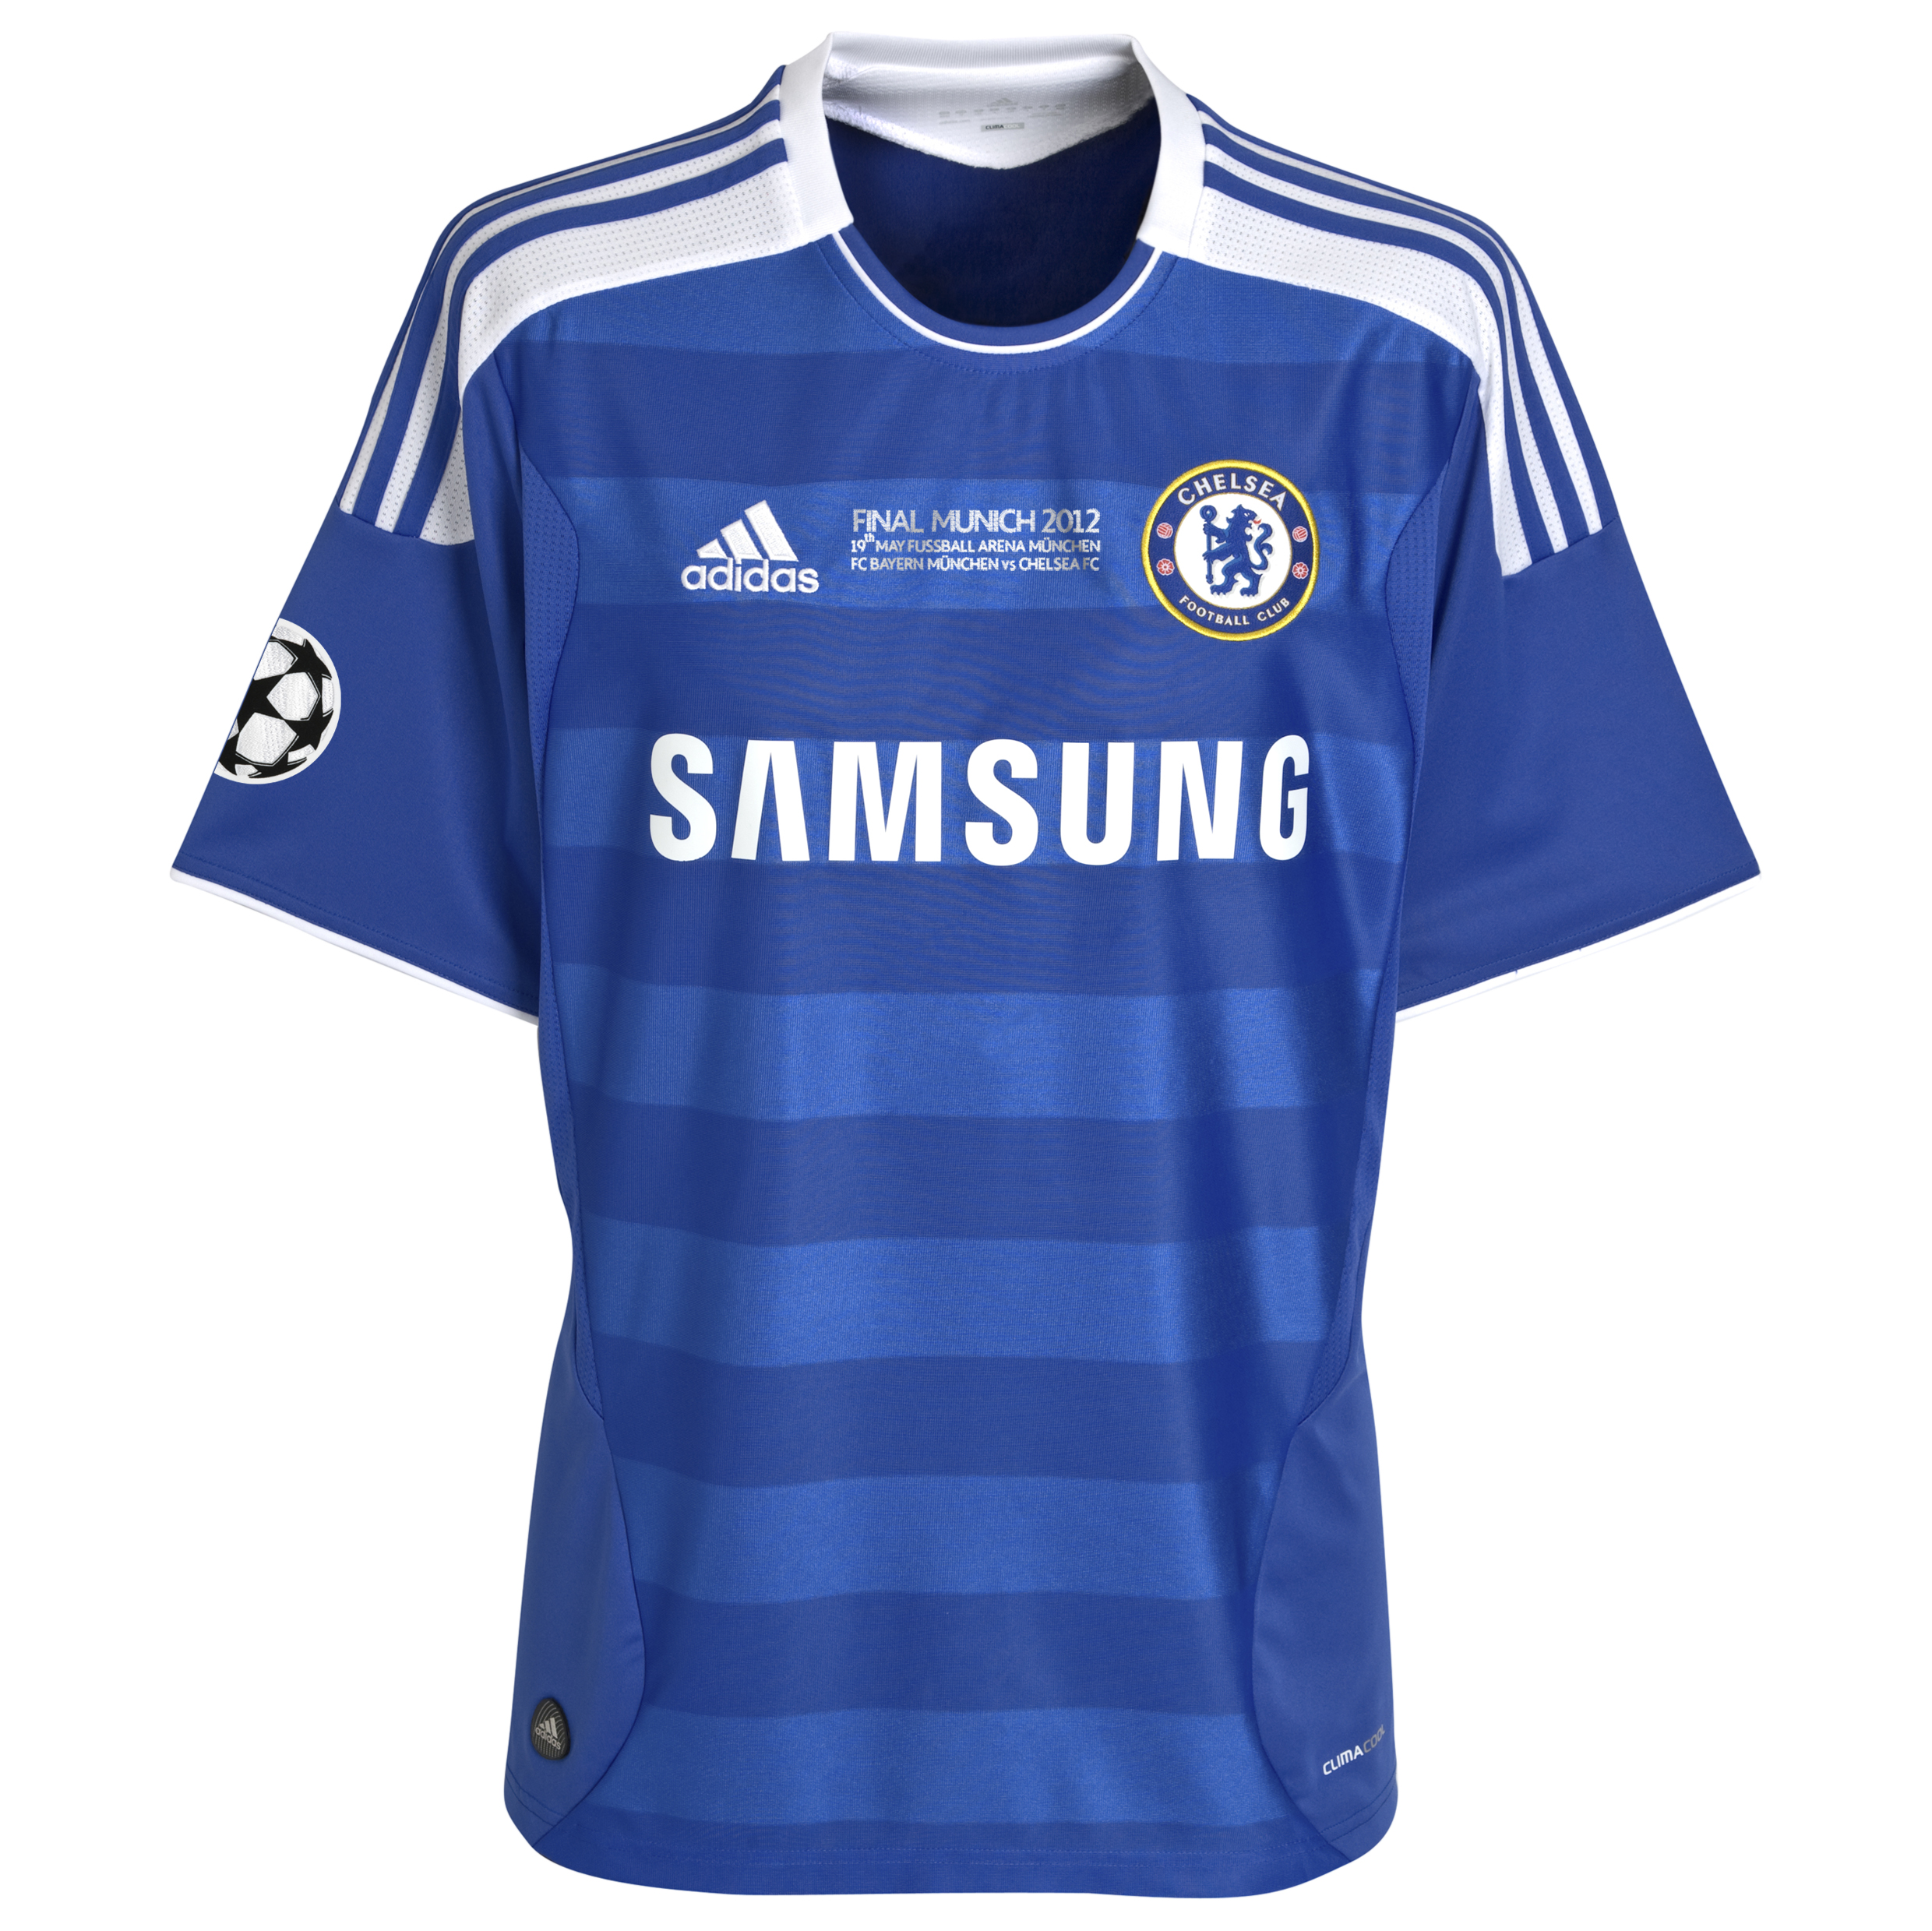 Chelsea Home Shirt 2011/12 Including Champions League Final Embroidery Kids